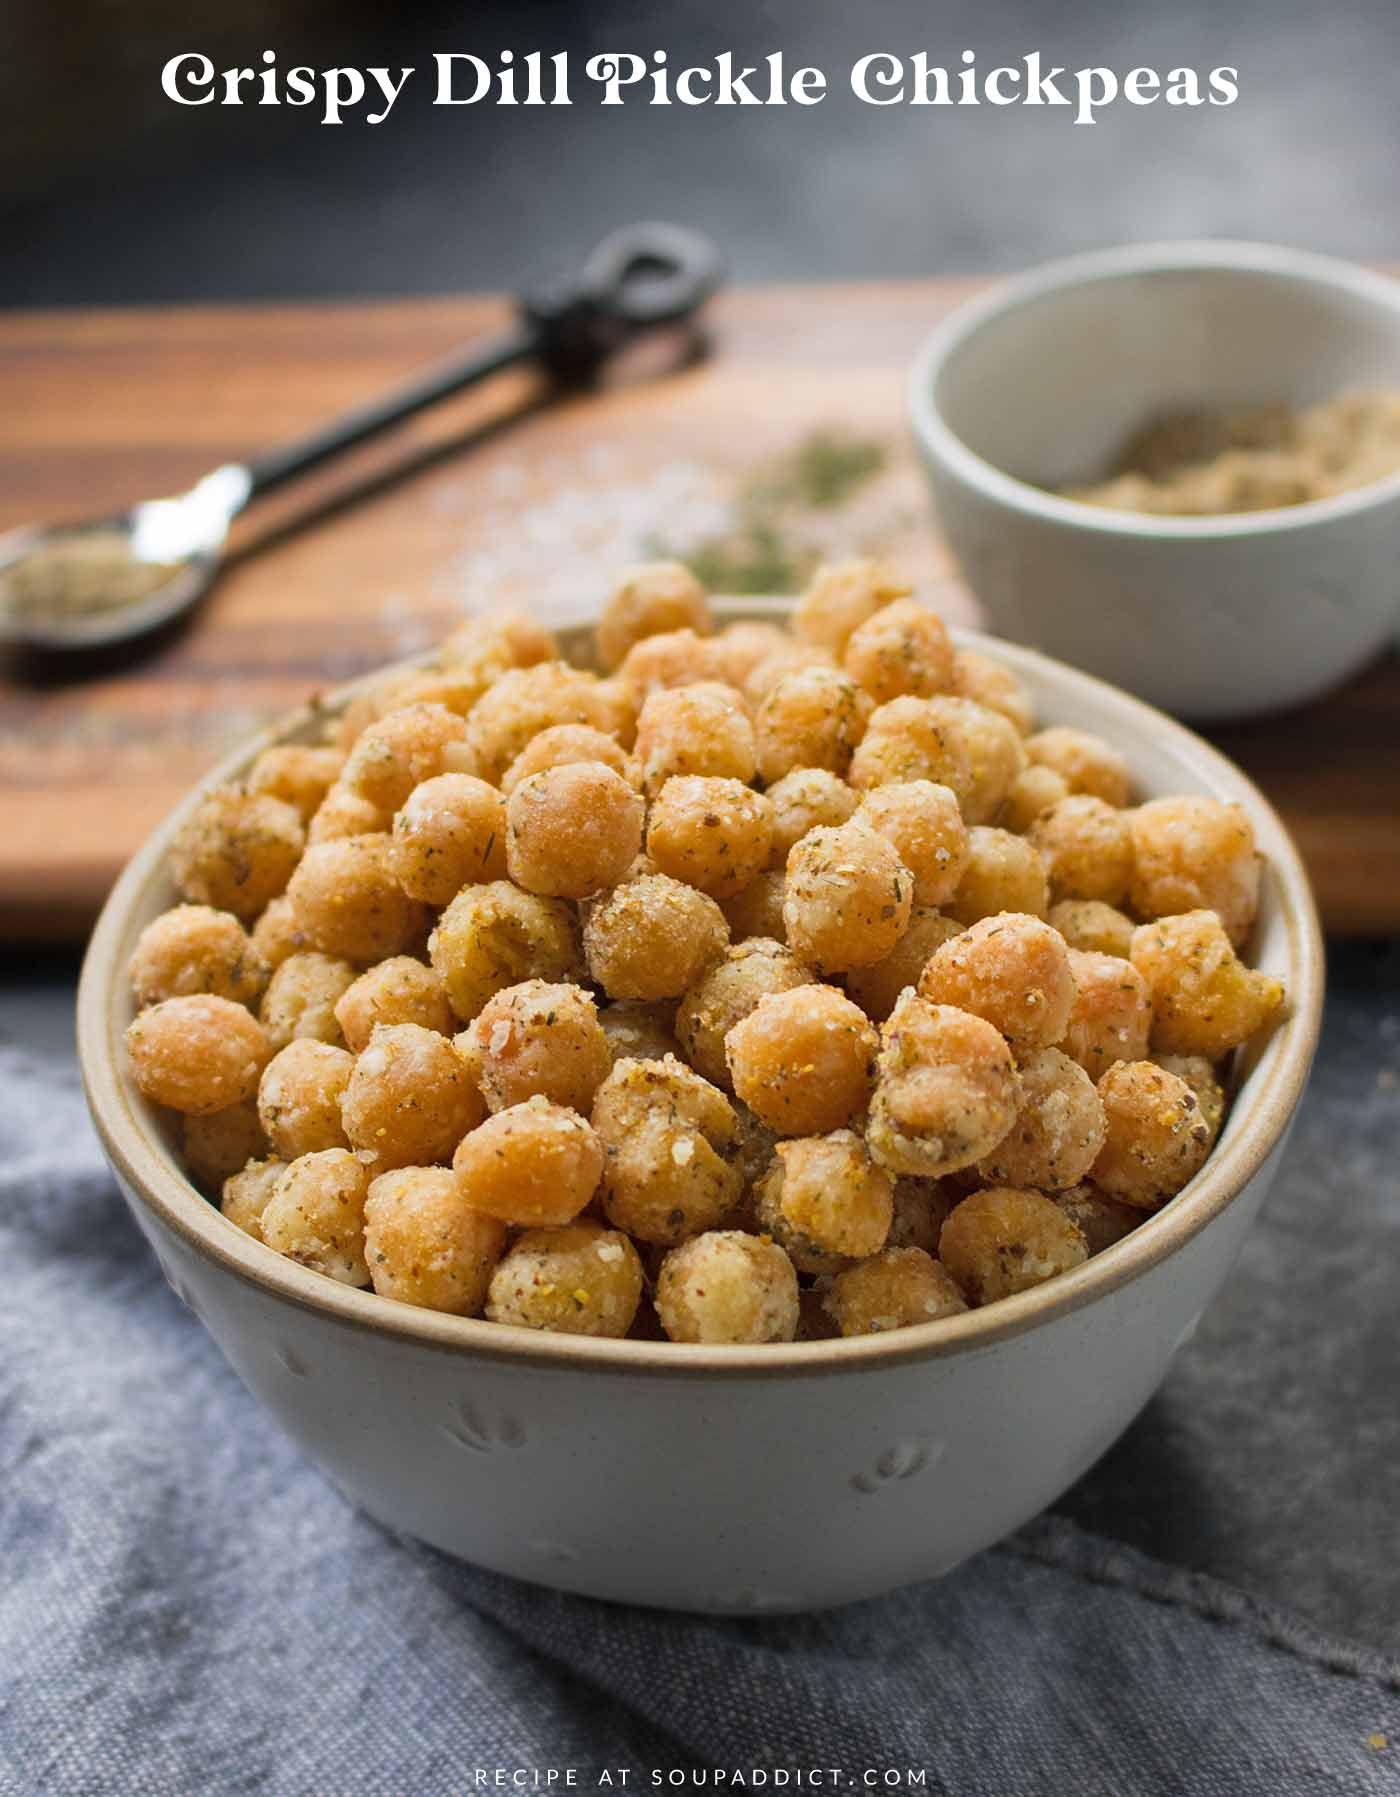 Crispy Dill Pickle Chickpeas